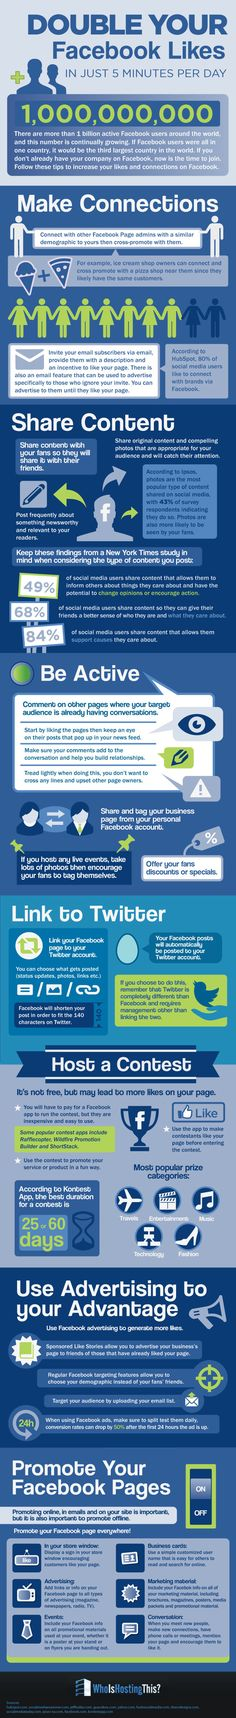 Just in time for Facebook's 10th anniversary! Double #Facebook Likes Organically In Just Five Minutes A Day [Infographic] #socialmedia #marketing